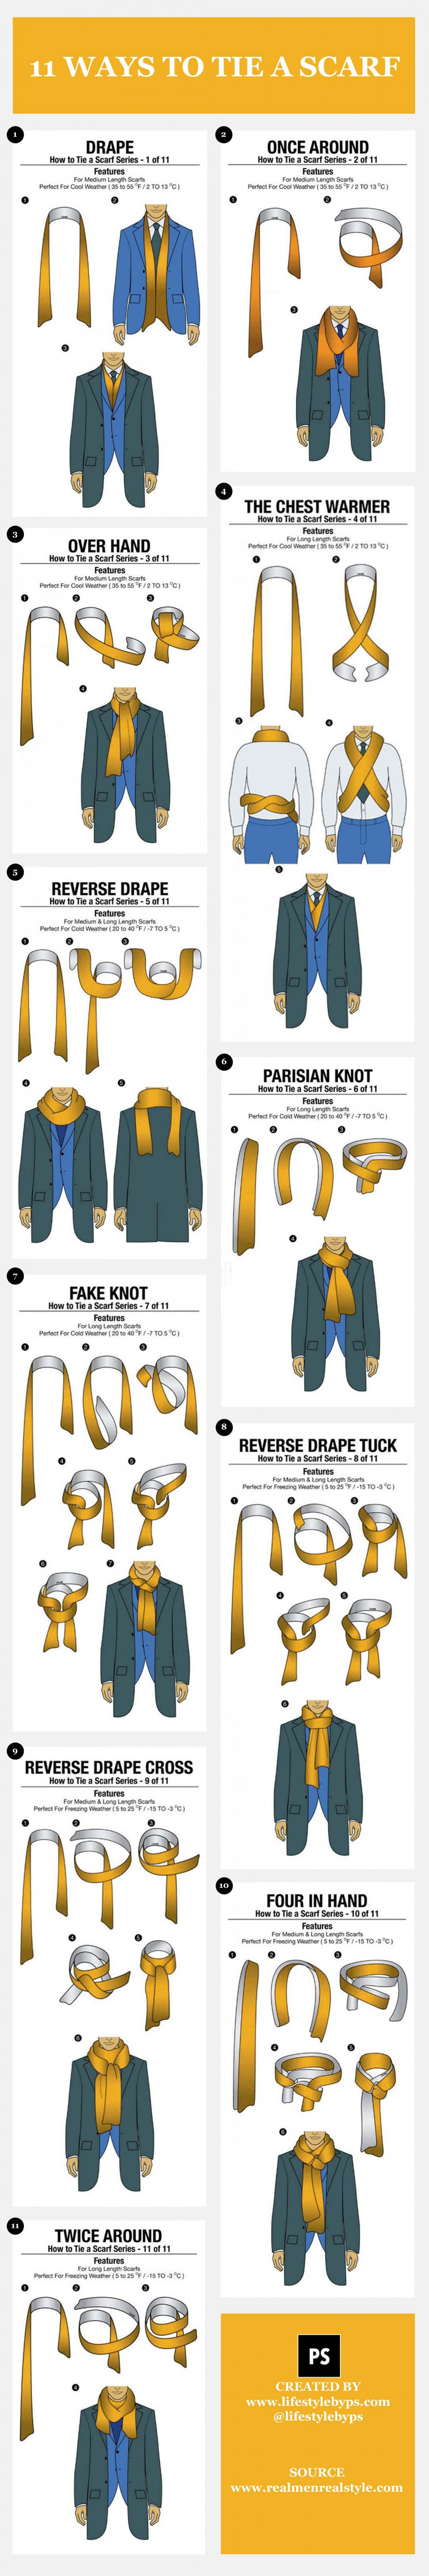 Printable scarf tying instructions